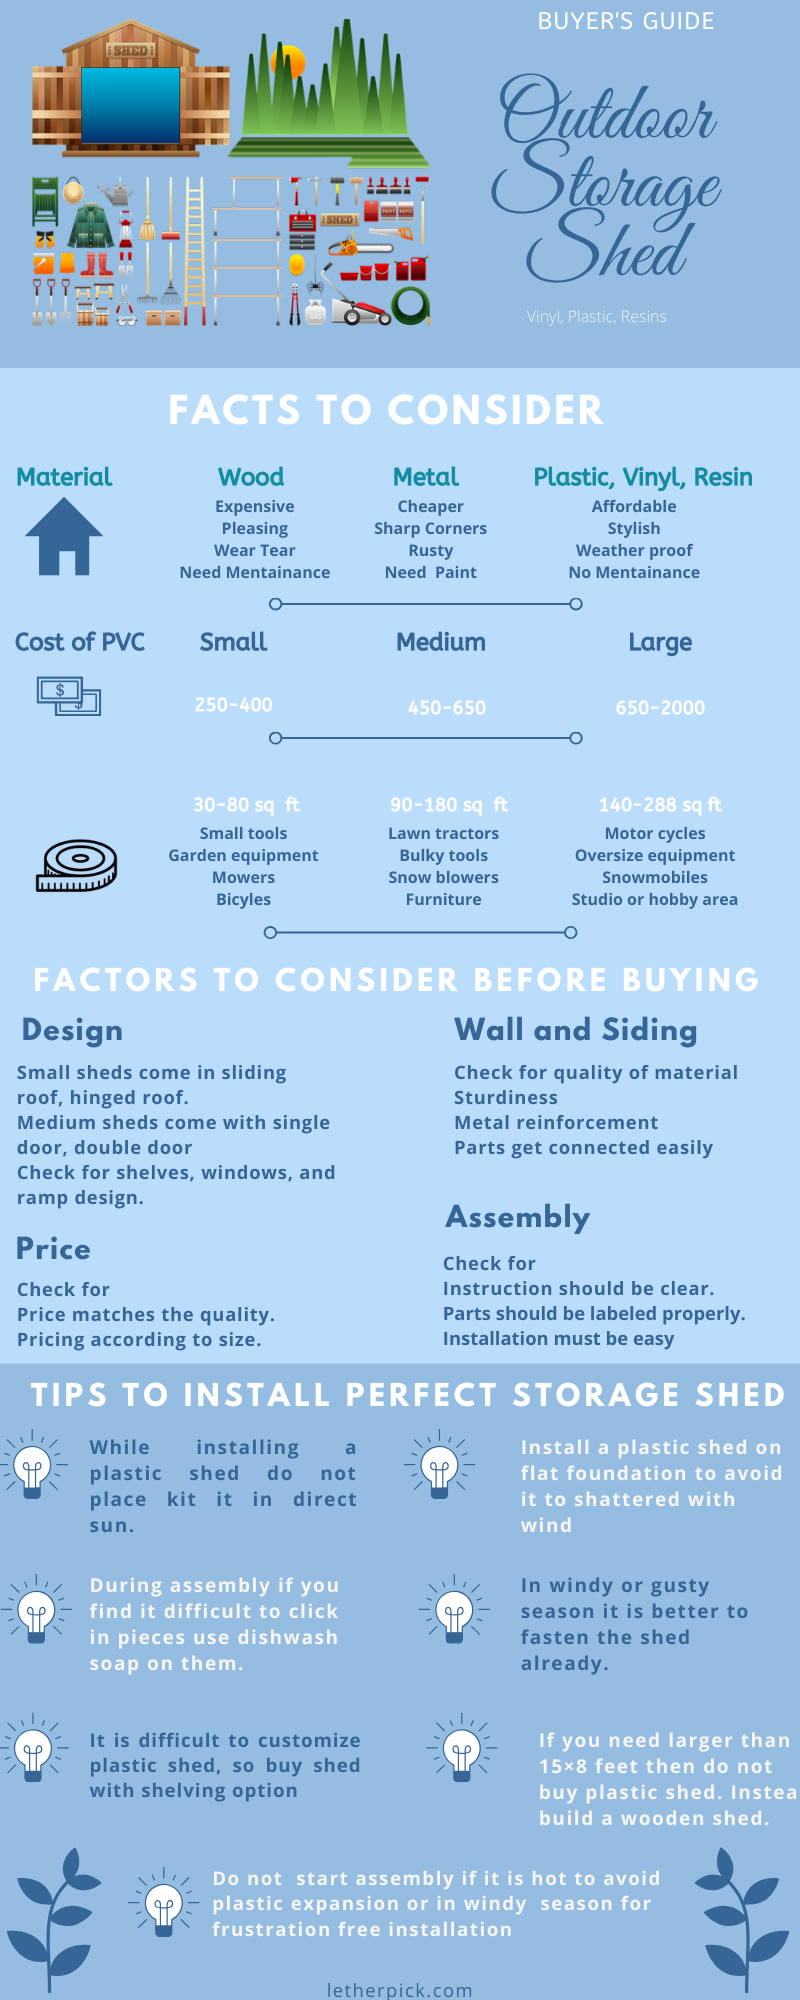 Infographic - Outdoor storage shed Buyer's Guide